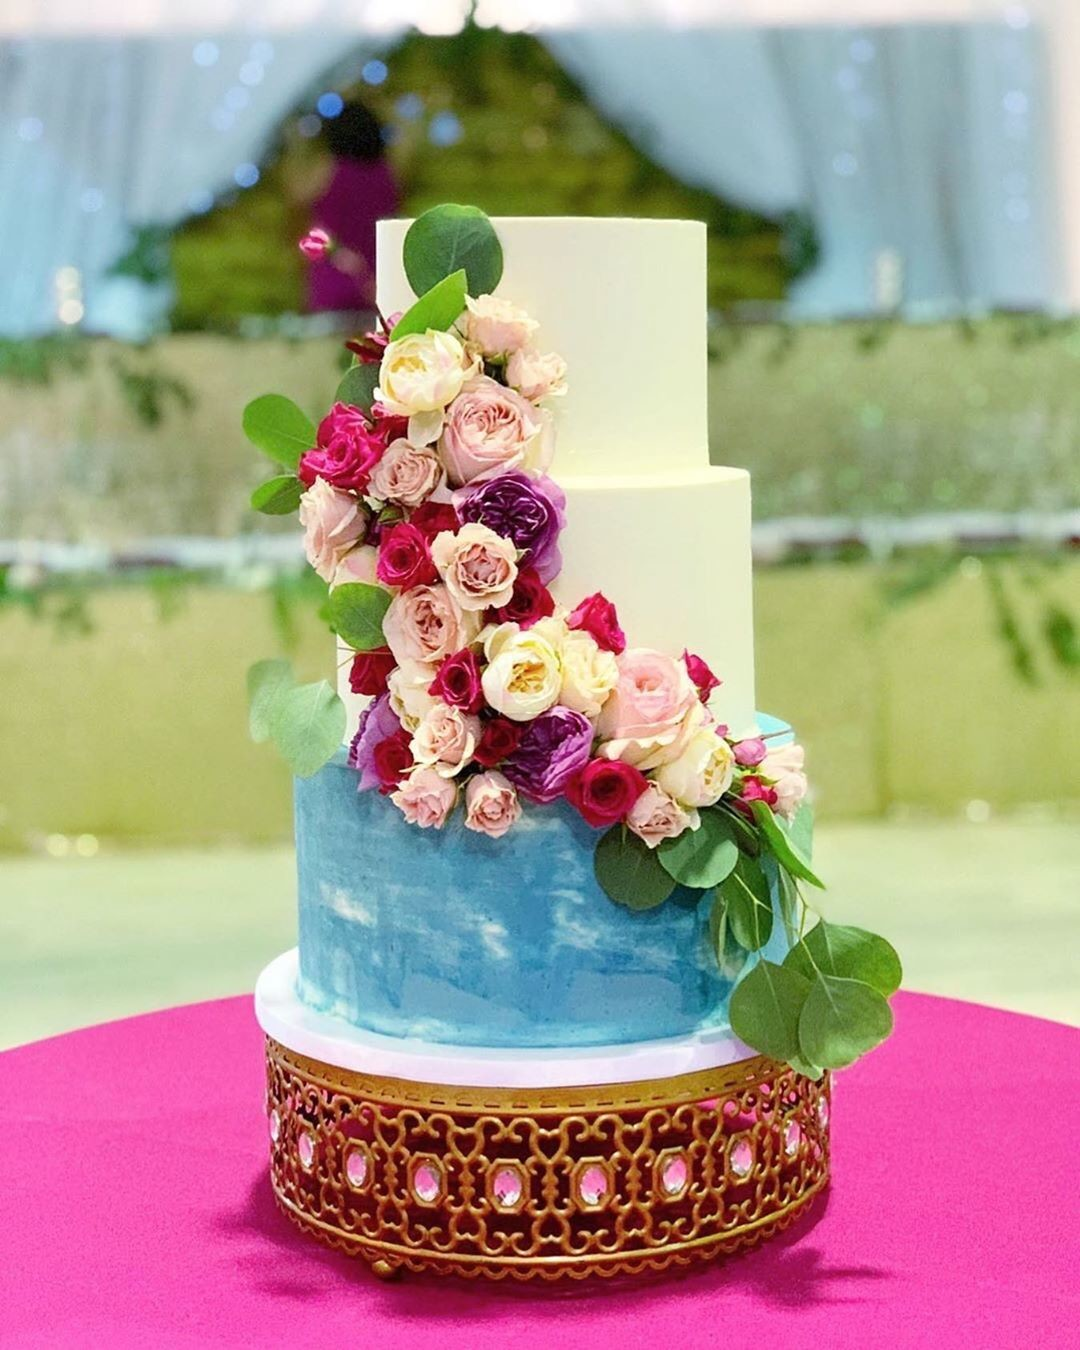 Stunning 💕Wedding Cake by @thenoblecakery on our Moroccan